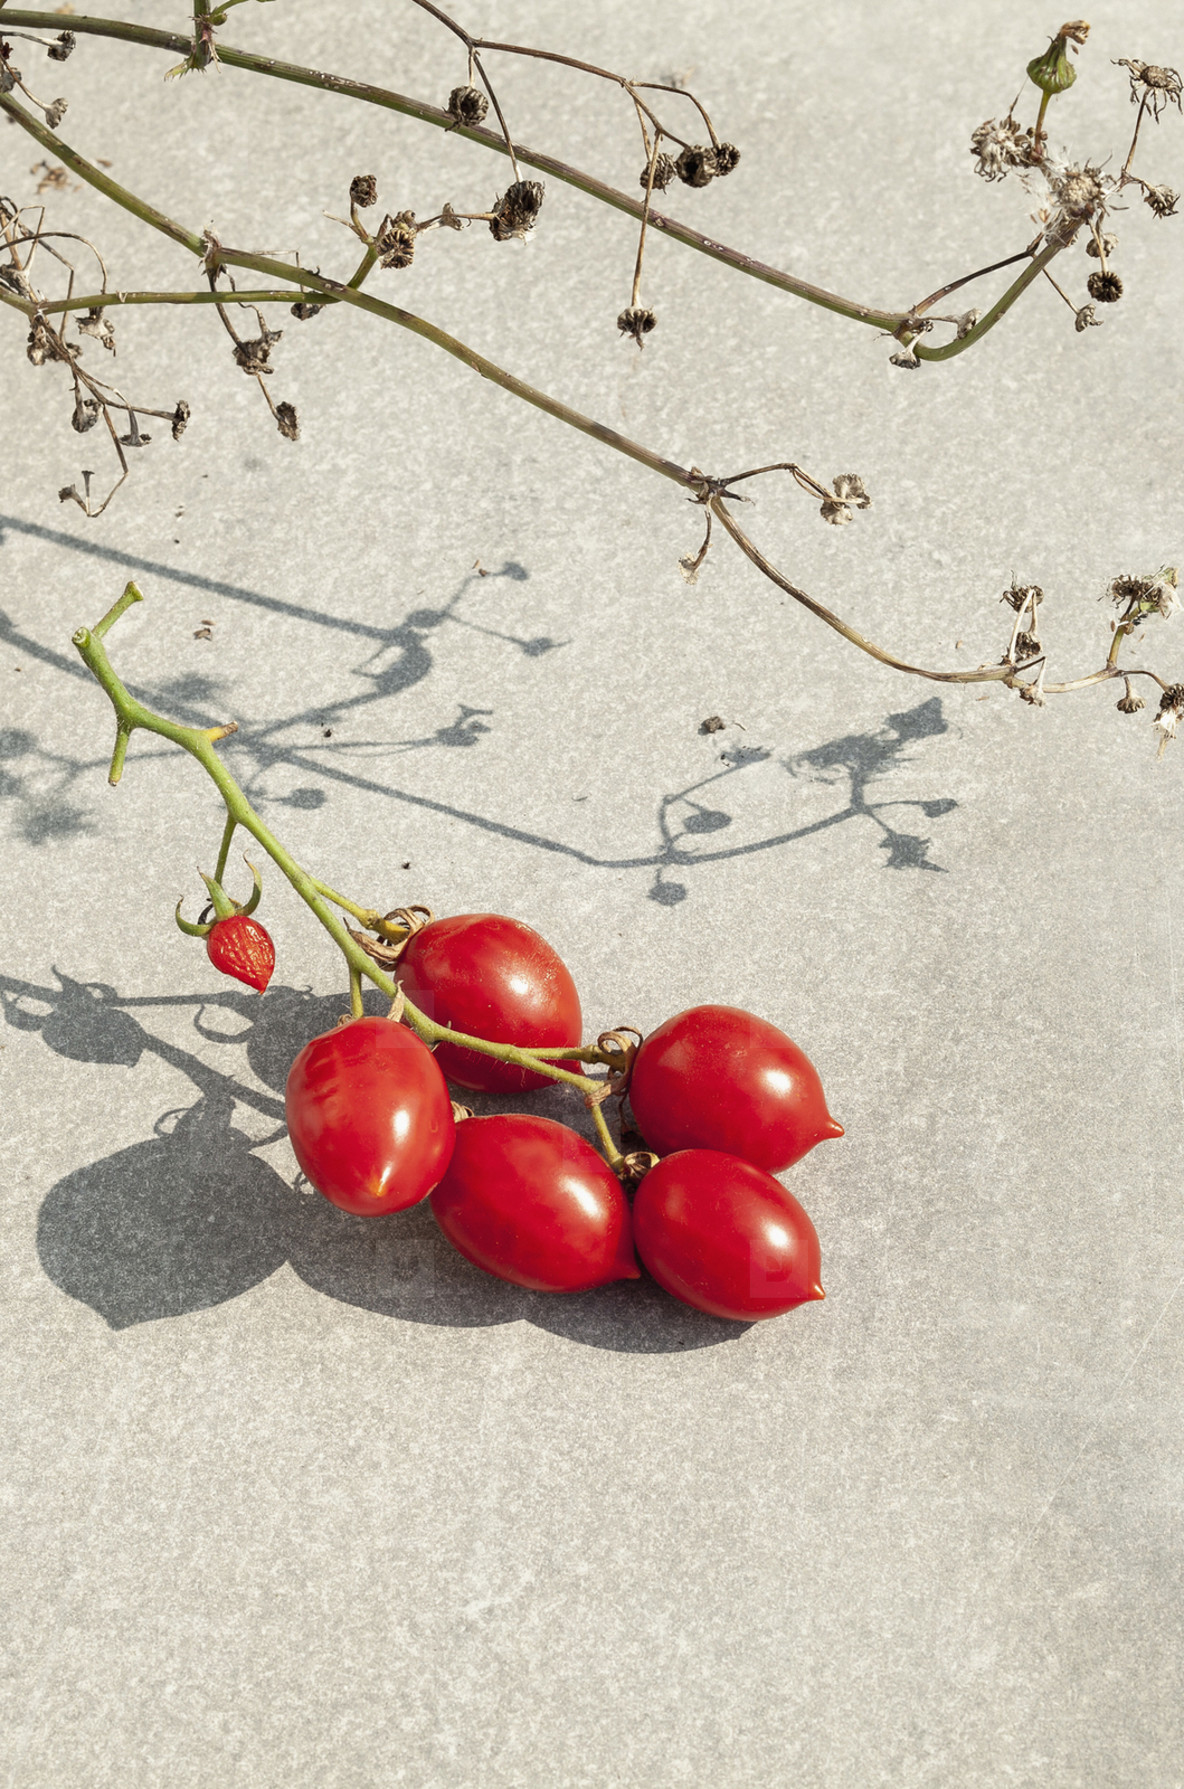 Ripe red tomatoes growing on vine